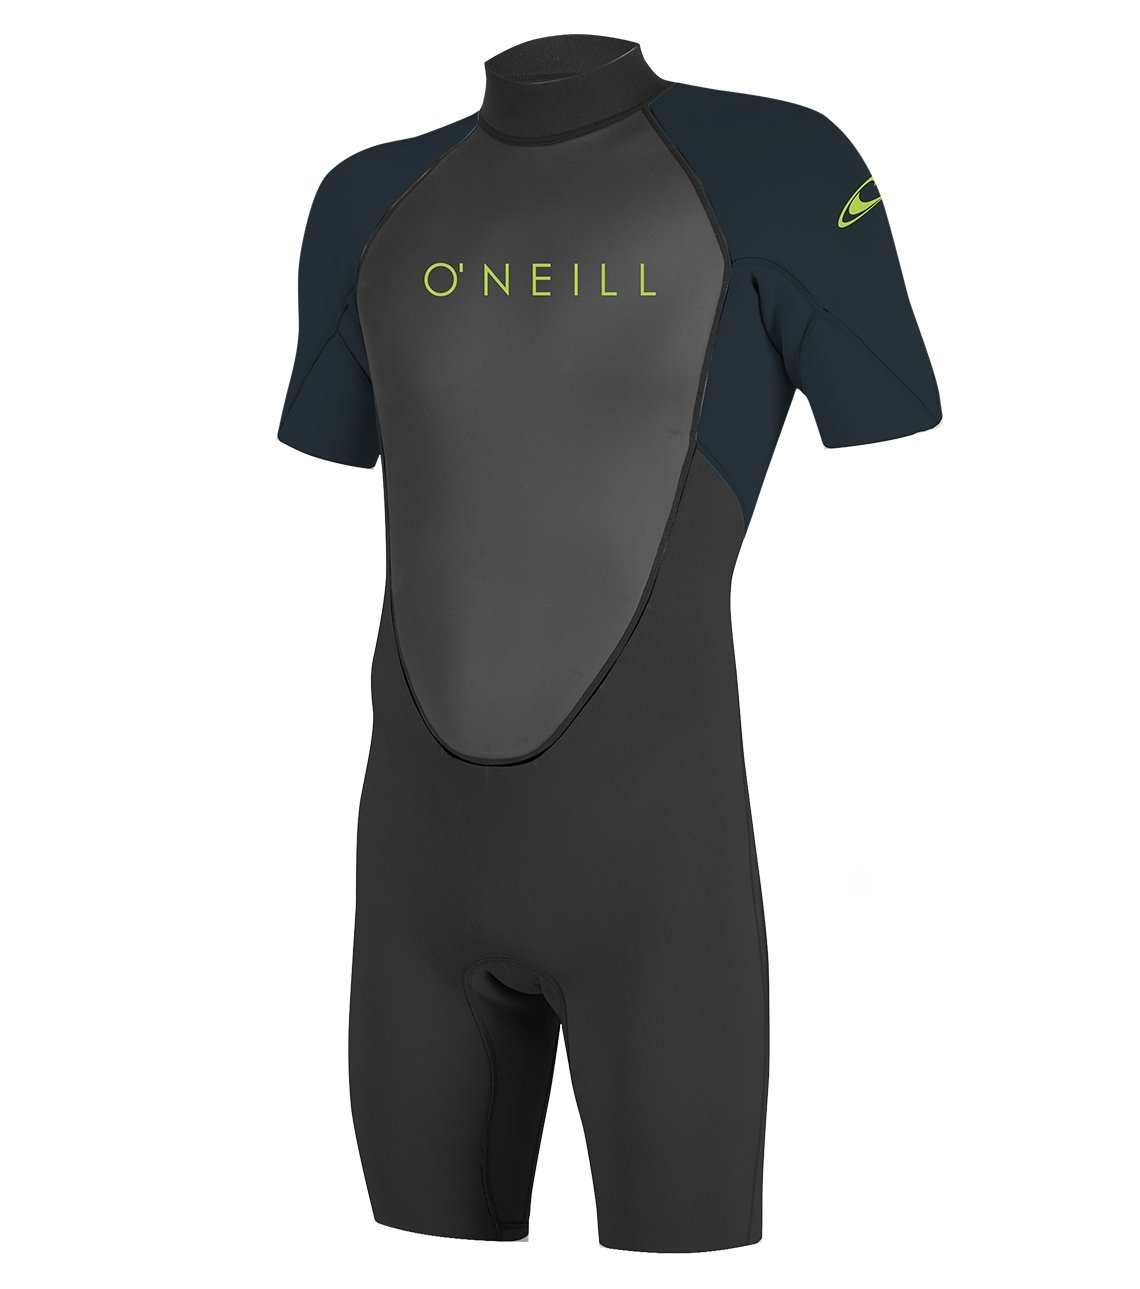 O'Neill Youth Reactor-2 2mm Back Zip Short Sleeve Spring Wetsuit, Black/Slate, 6 by O'Neill Wetsuits (Image #1)